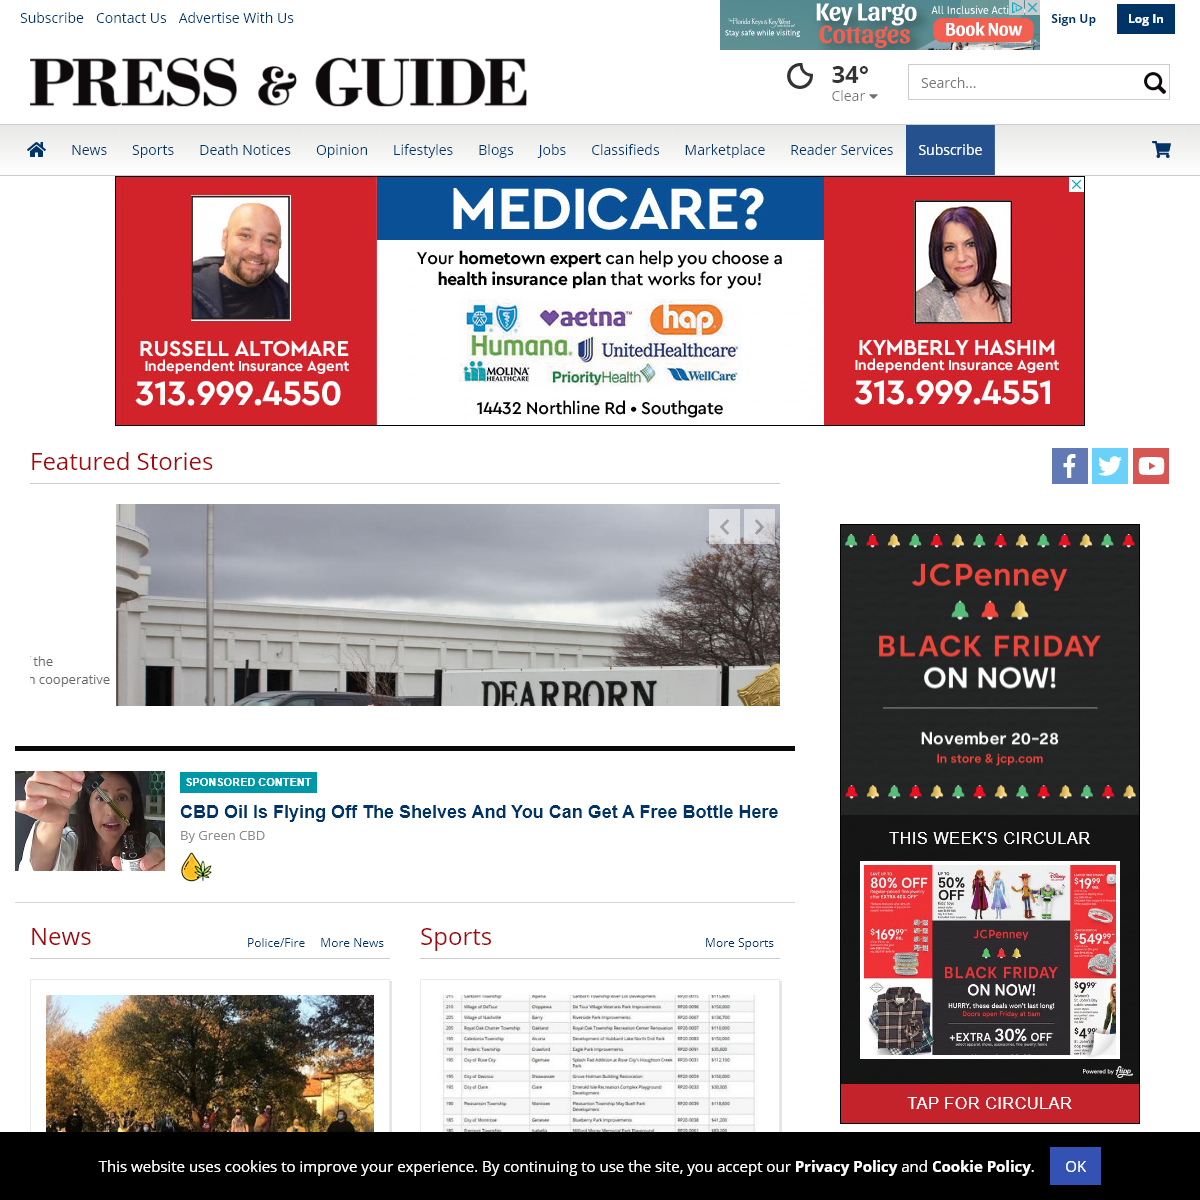 pressandguide.com - Dearborn, MI News, Breaking News, Sports, Weather & Things to Do